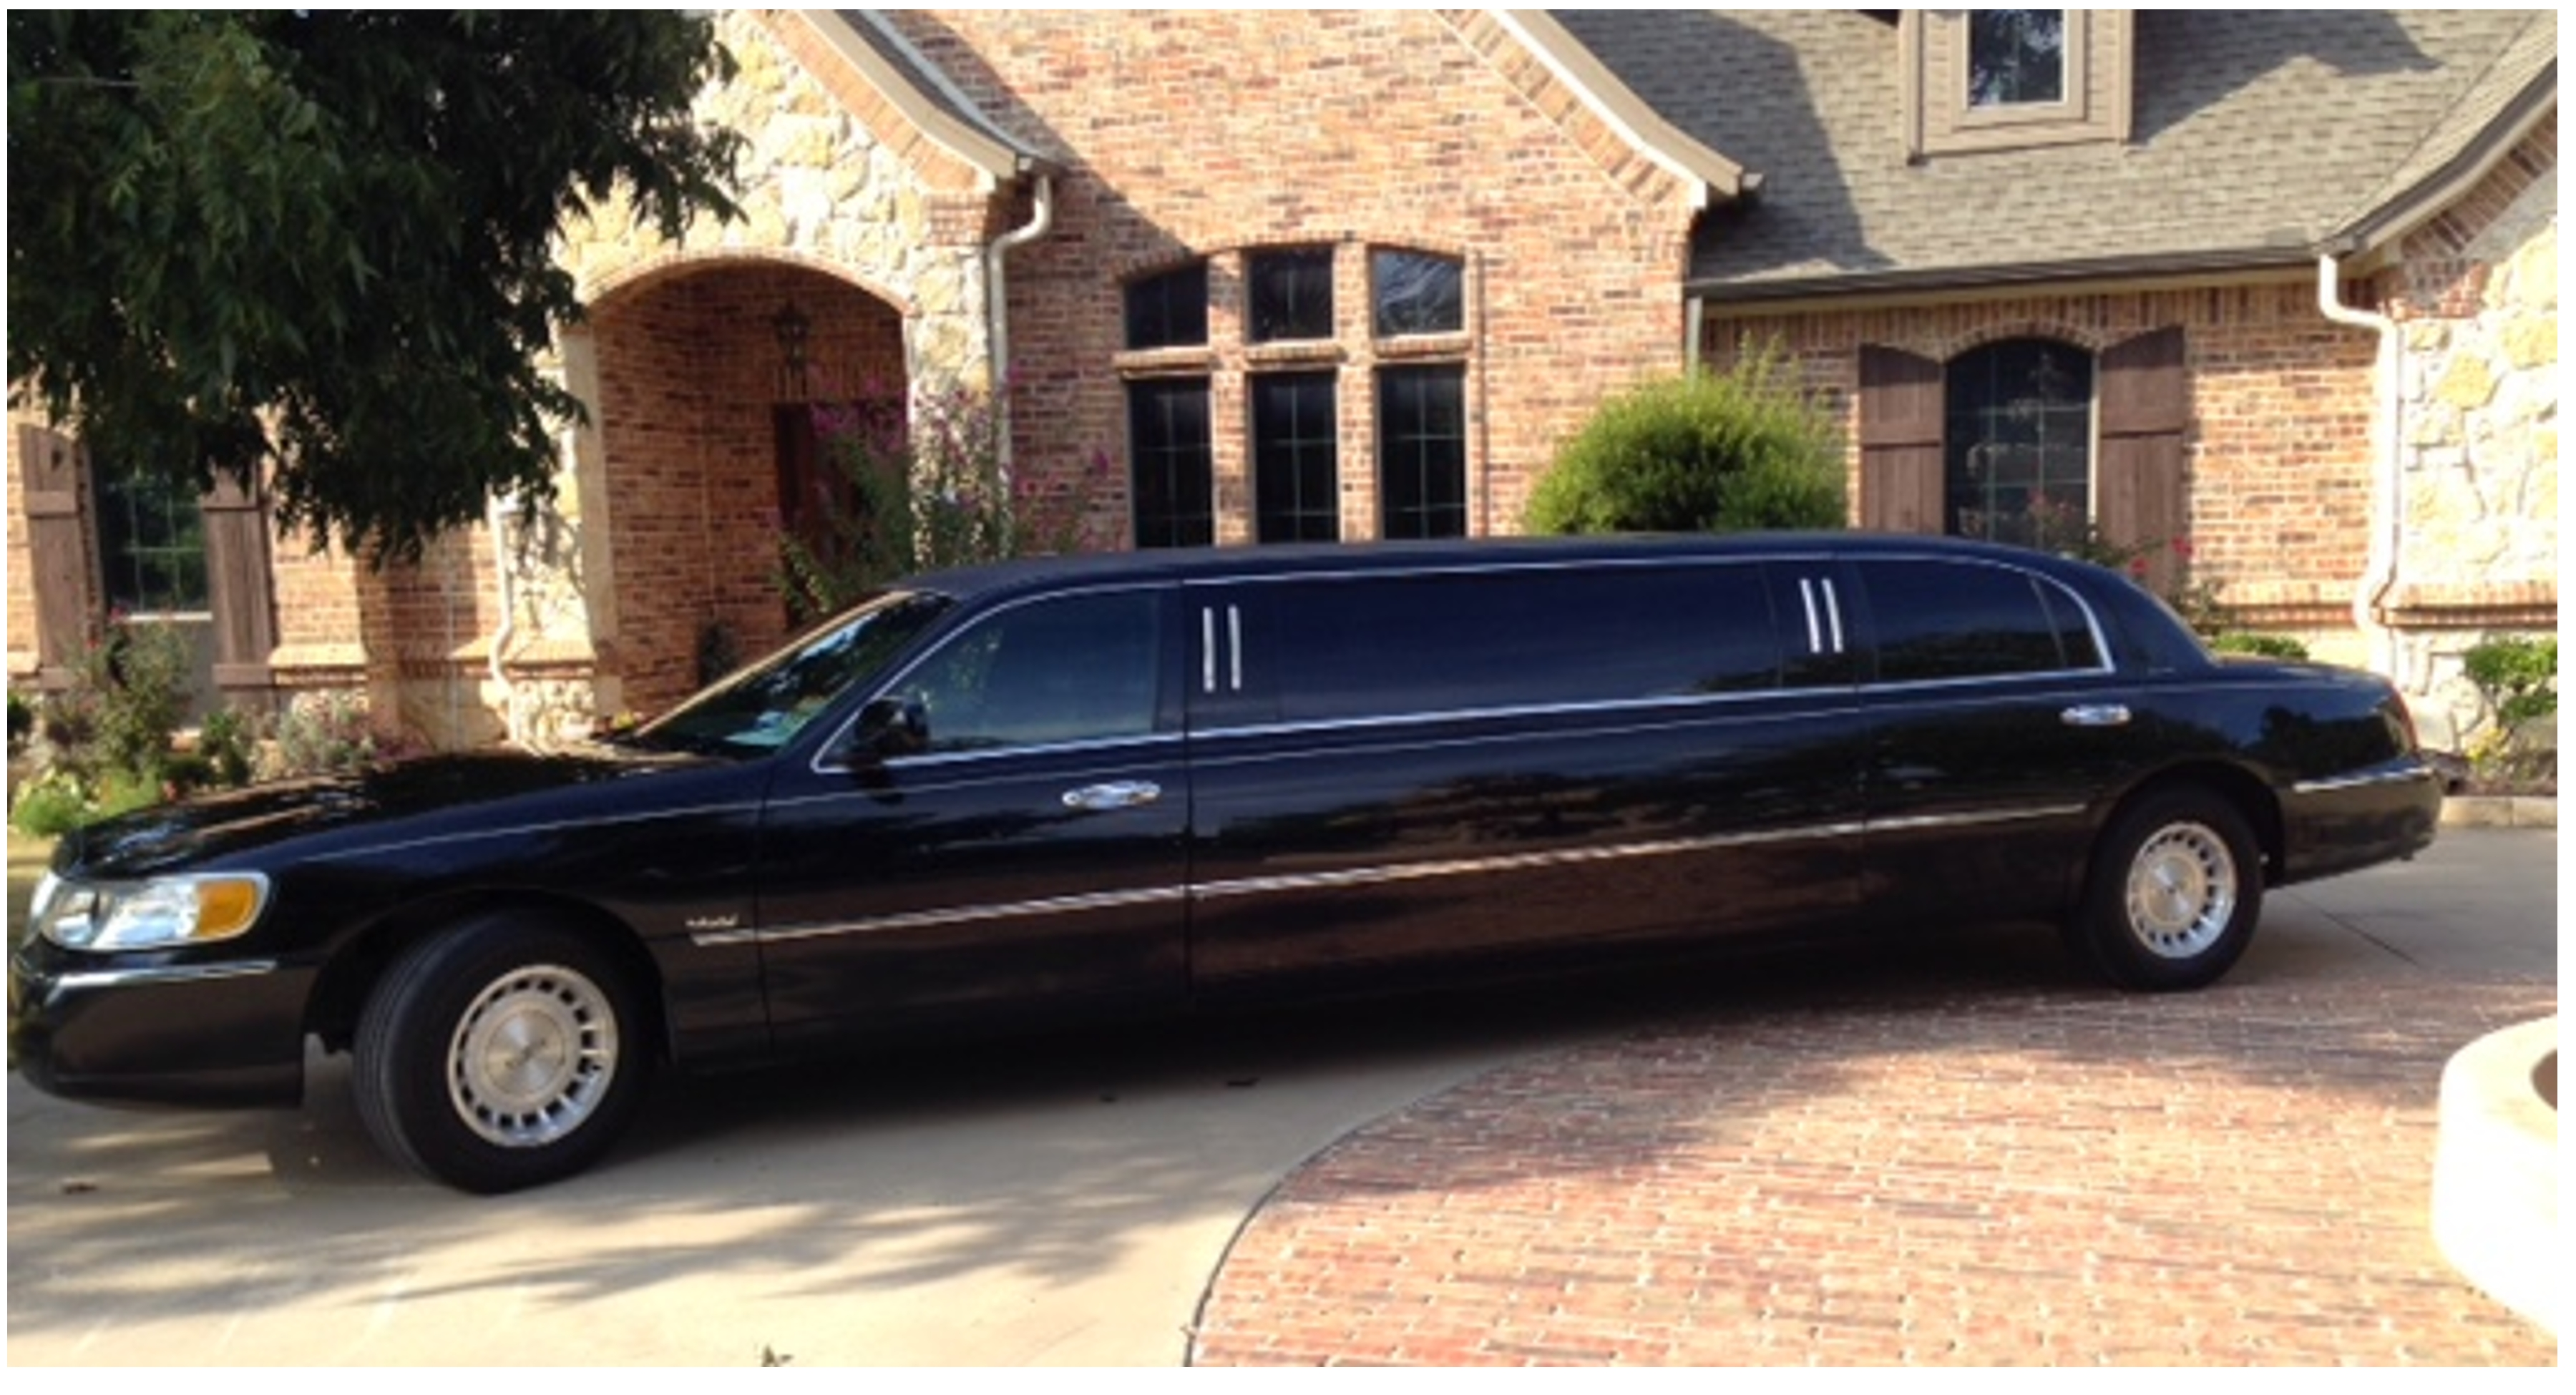 Our eight passenger stretch limo